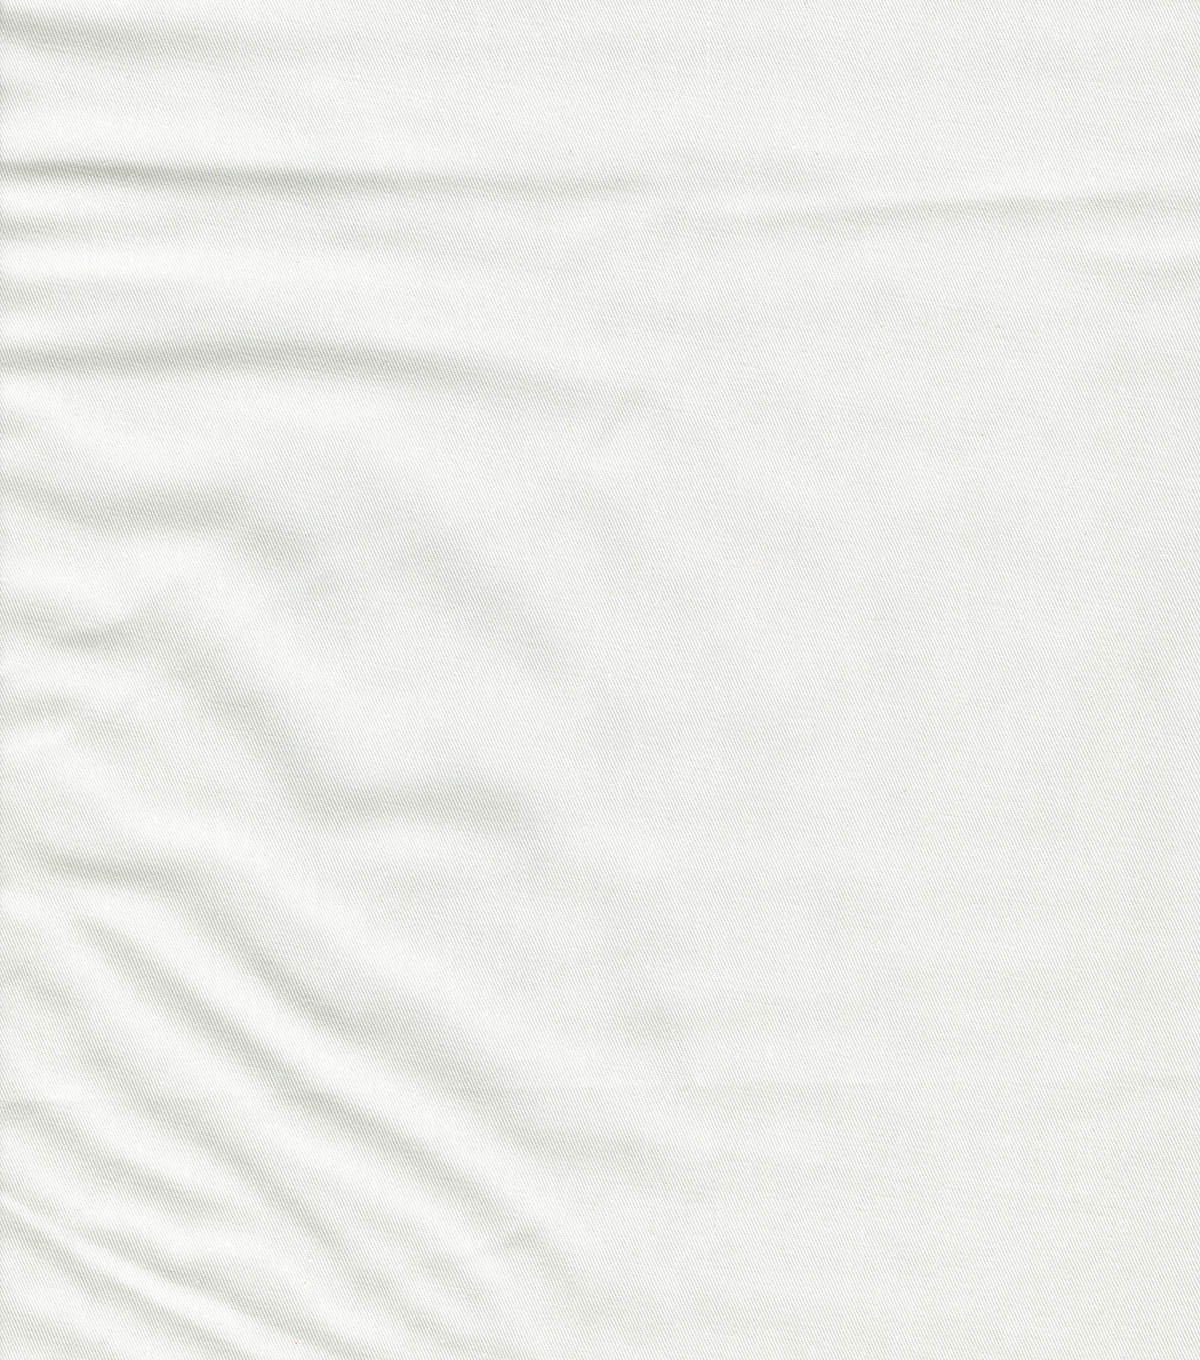 Sew Classic Bottomweight Wrinklease Fabric, White